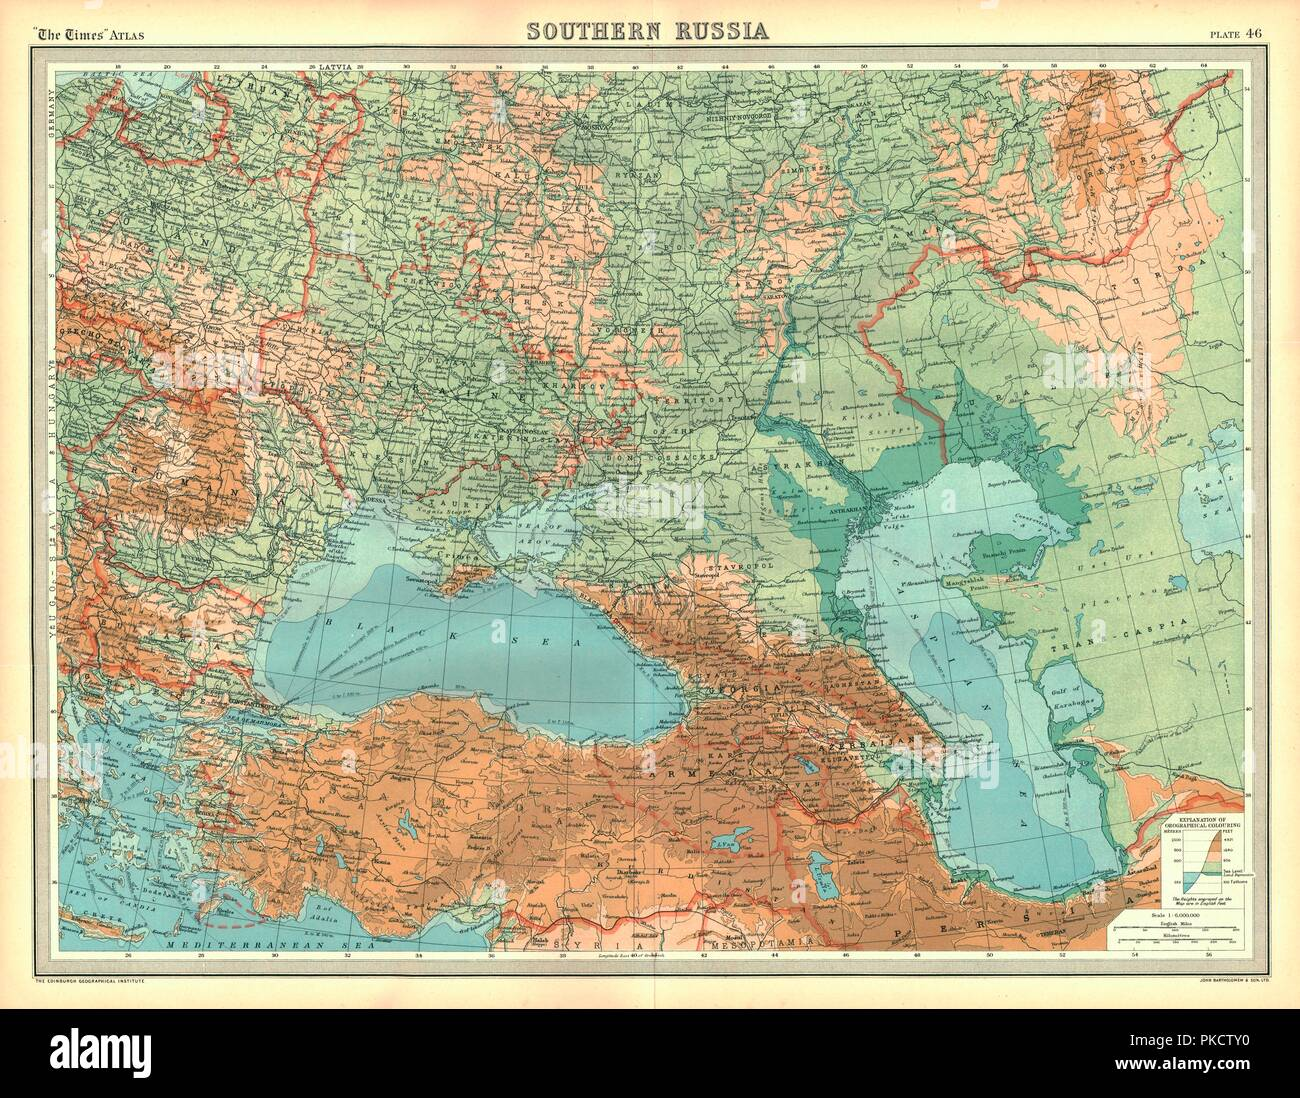 Russia Map Stock Photos & Russia Map Stock Images - Alamy